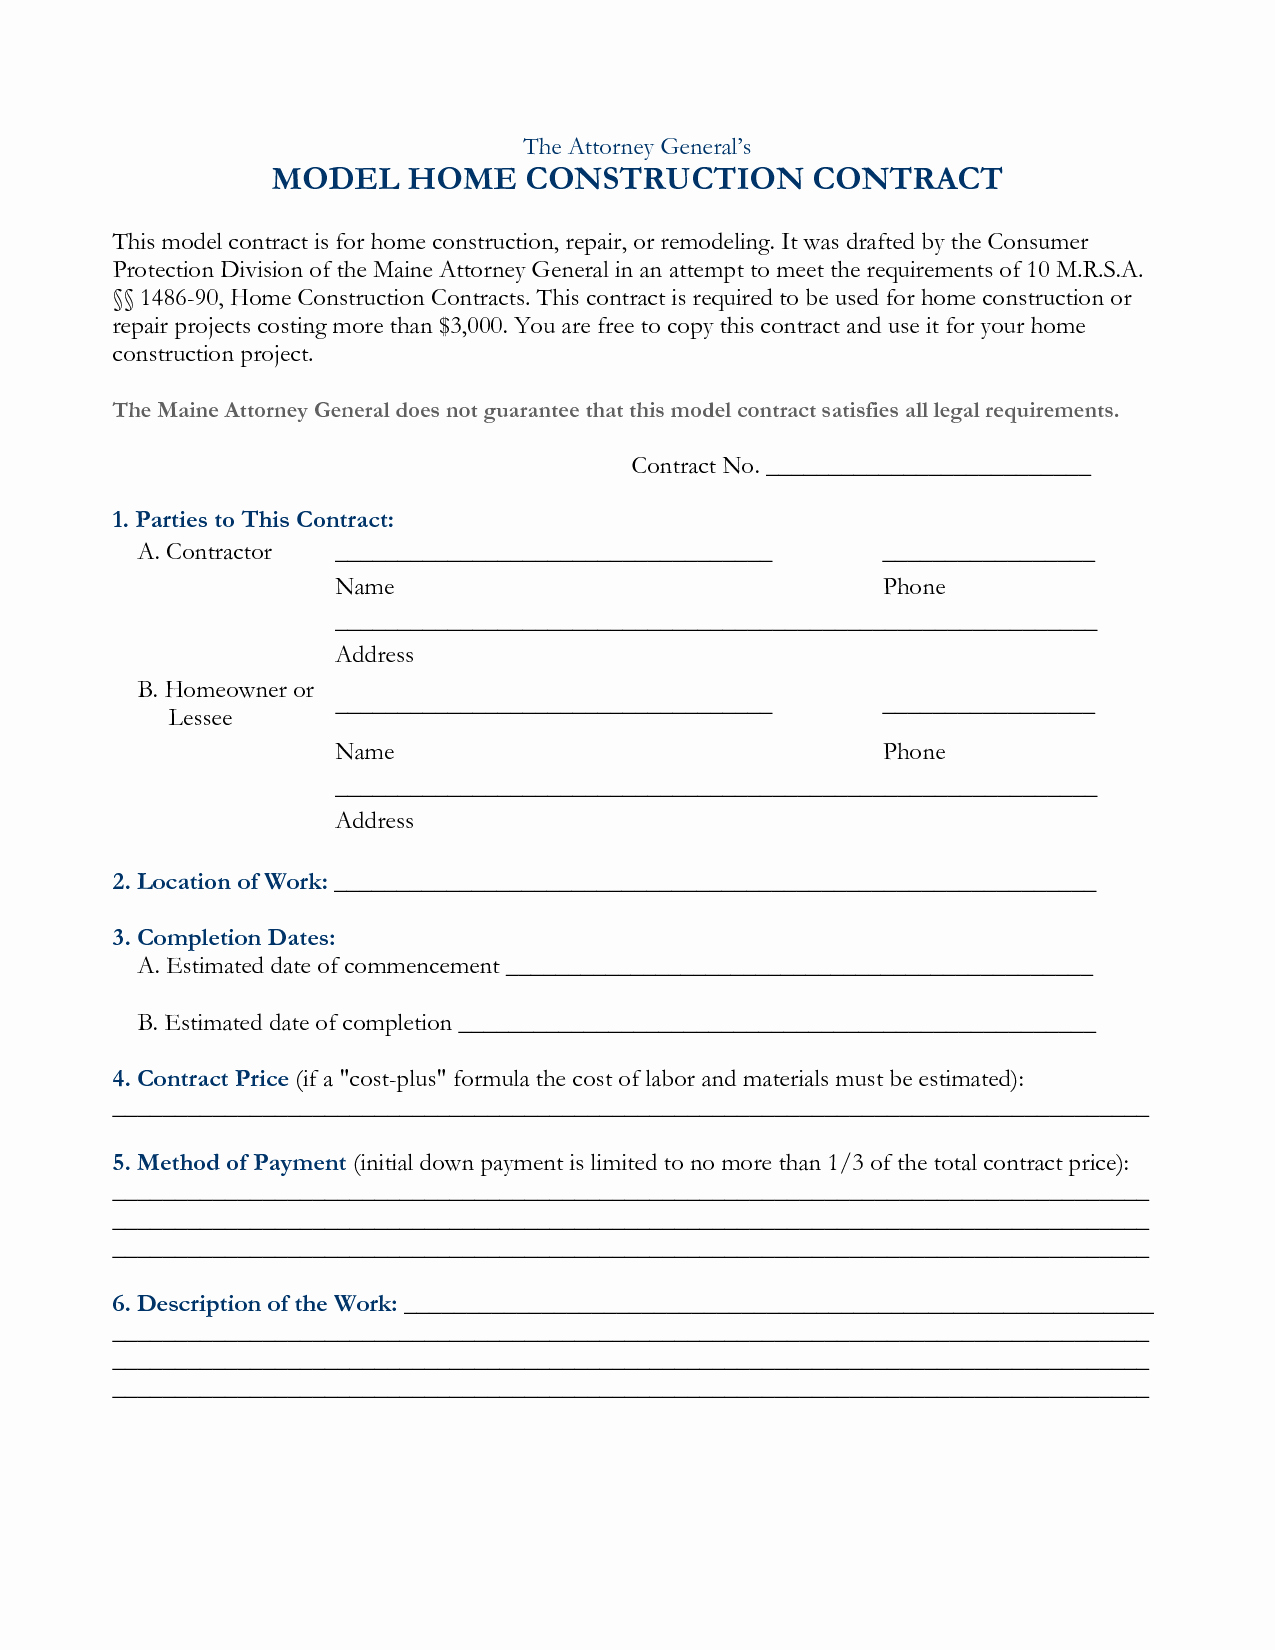 Home Construction Contract Template Awesome Free Roofing Contract Blank forms